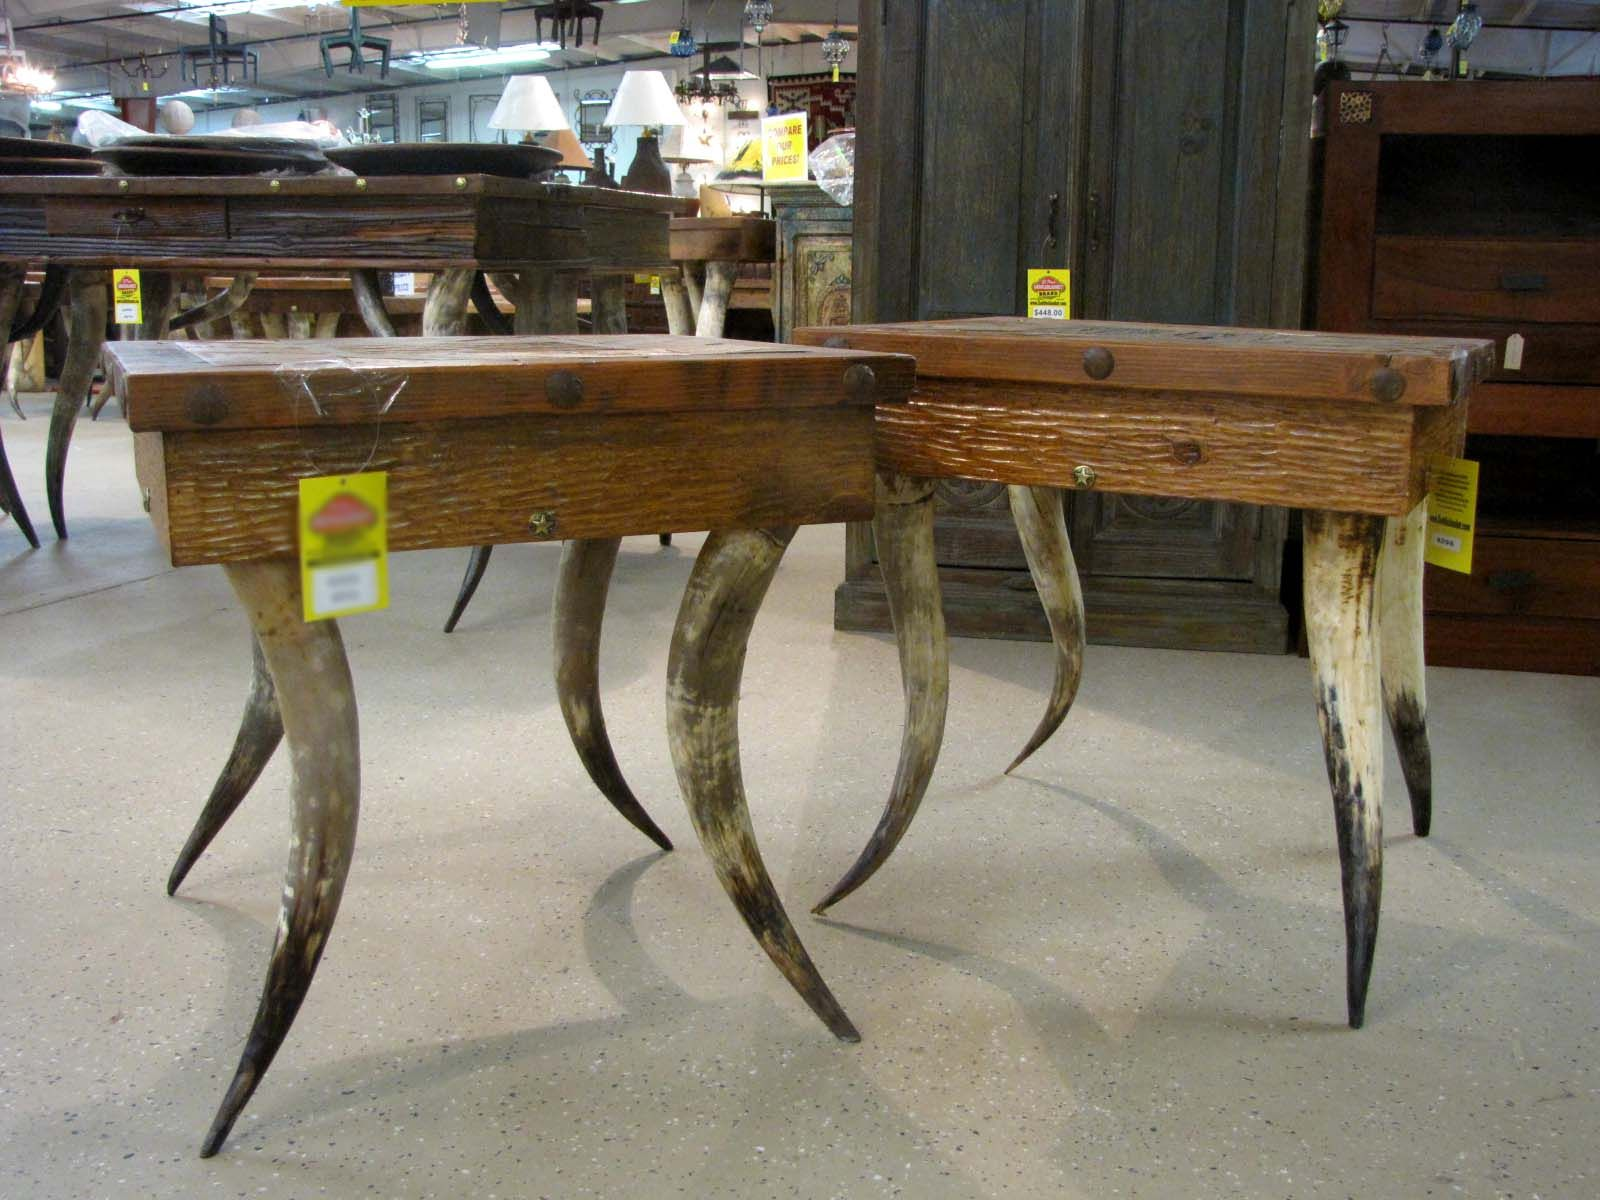 With Authentic Cow Horn Legs, The Horn Leg Coffee Table